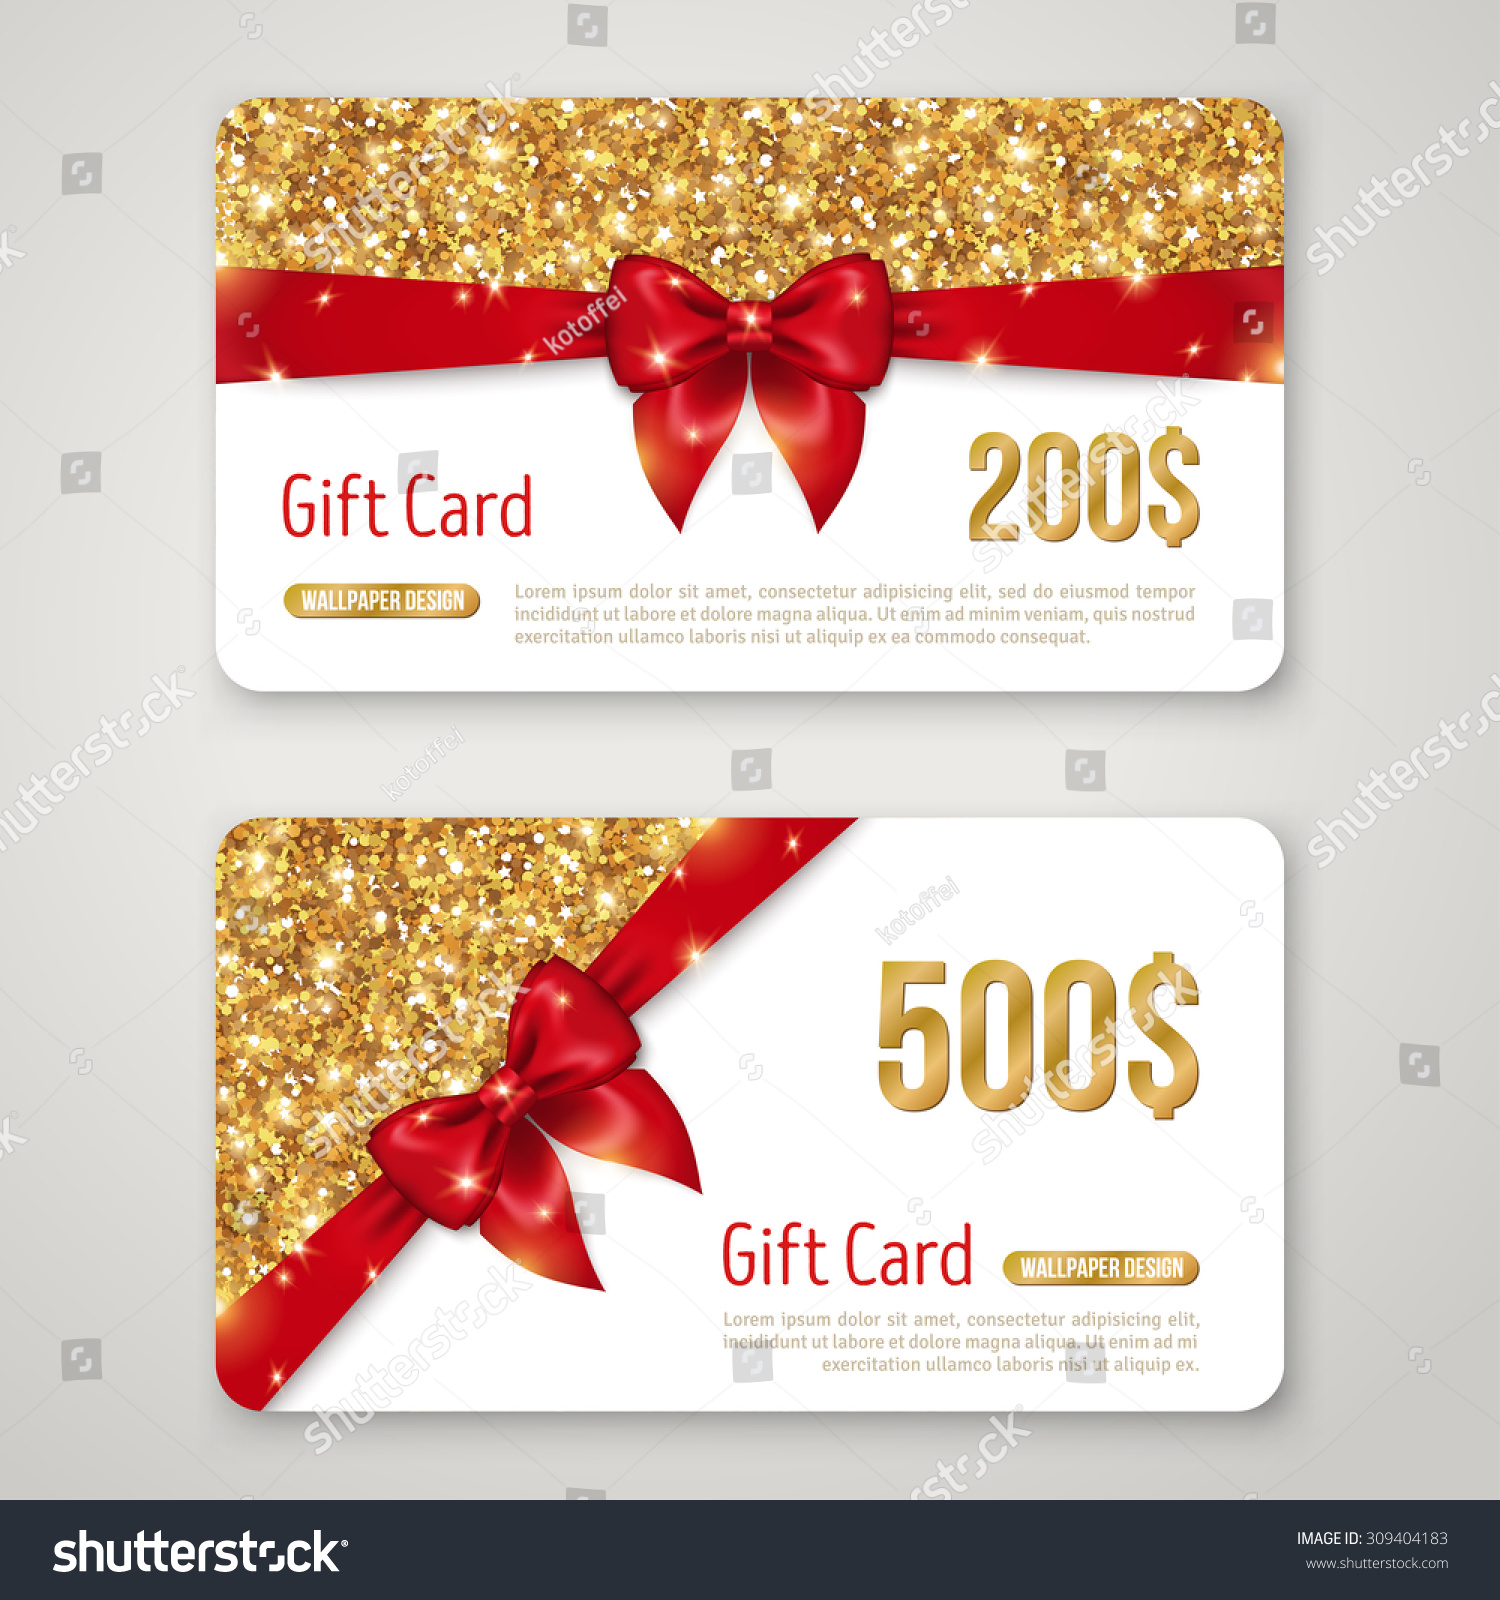 gift card design gold glitter texture stock vector 309404183 gift card design gold glitter texture and red bow invitation decorative card template